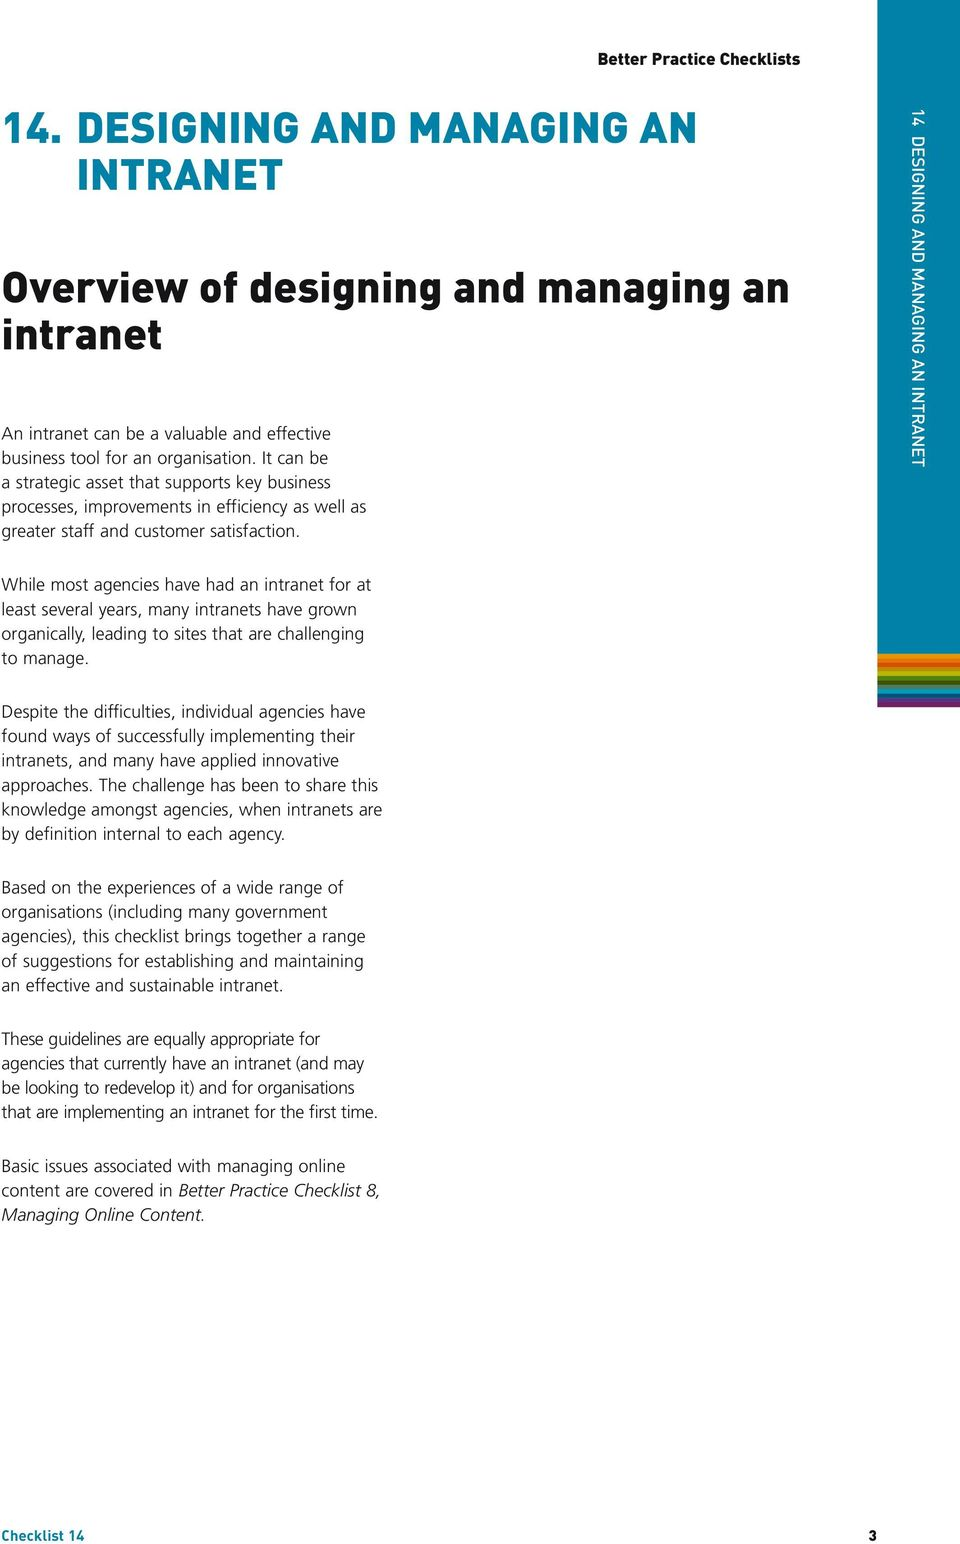 14 DESIGNING AND MANAGING AN INTRANET While most agencies have had an intranet for at least several years, many intranets have grown organically, leading to sites that are challenging to manage.